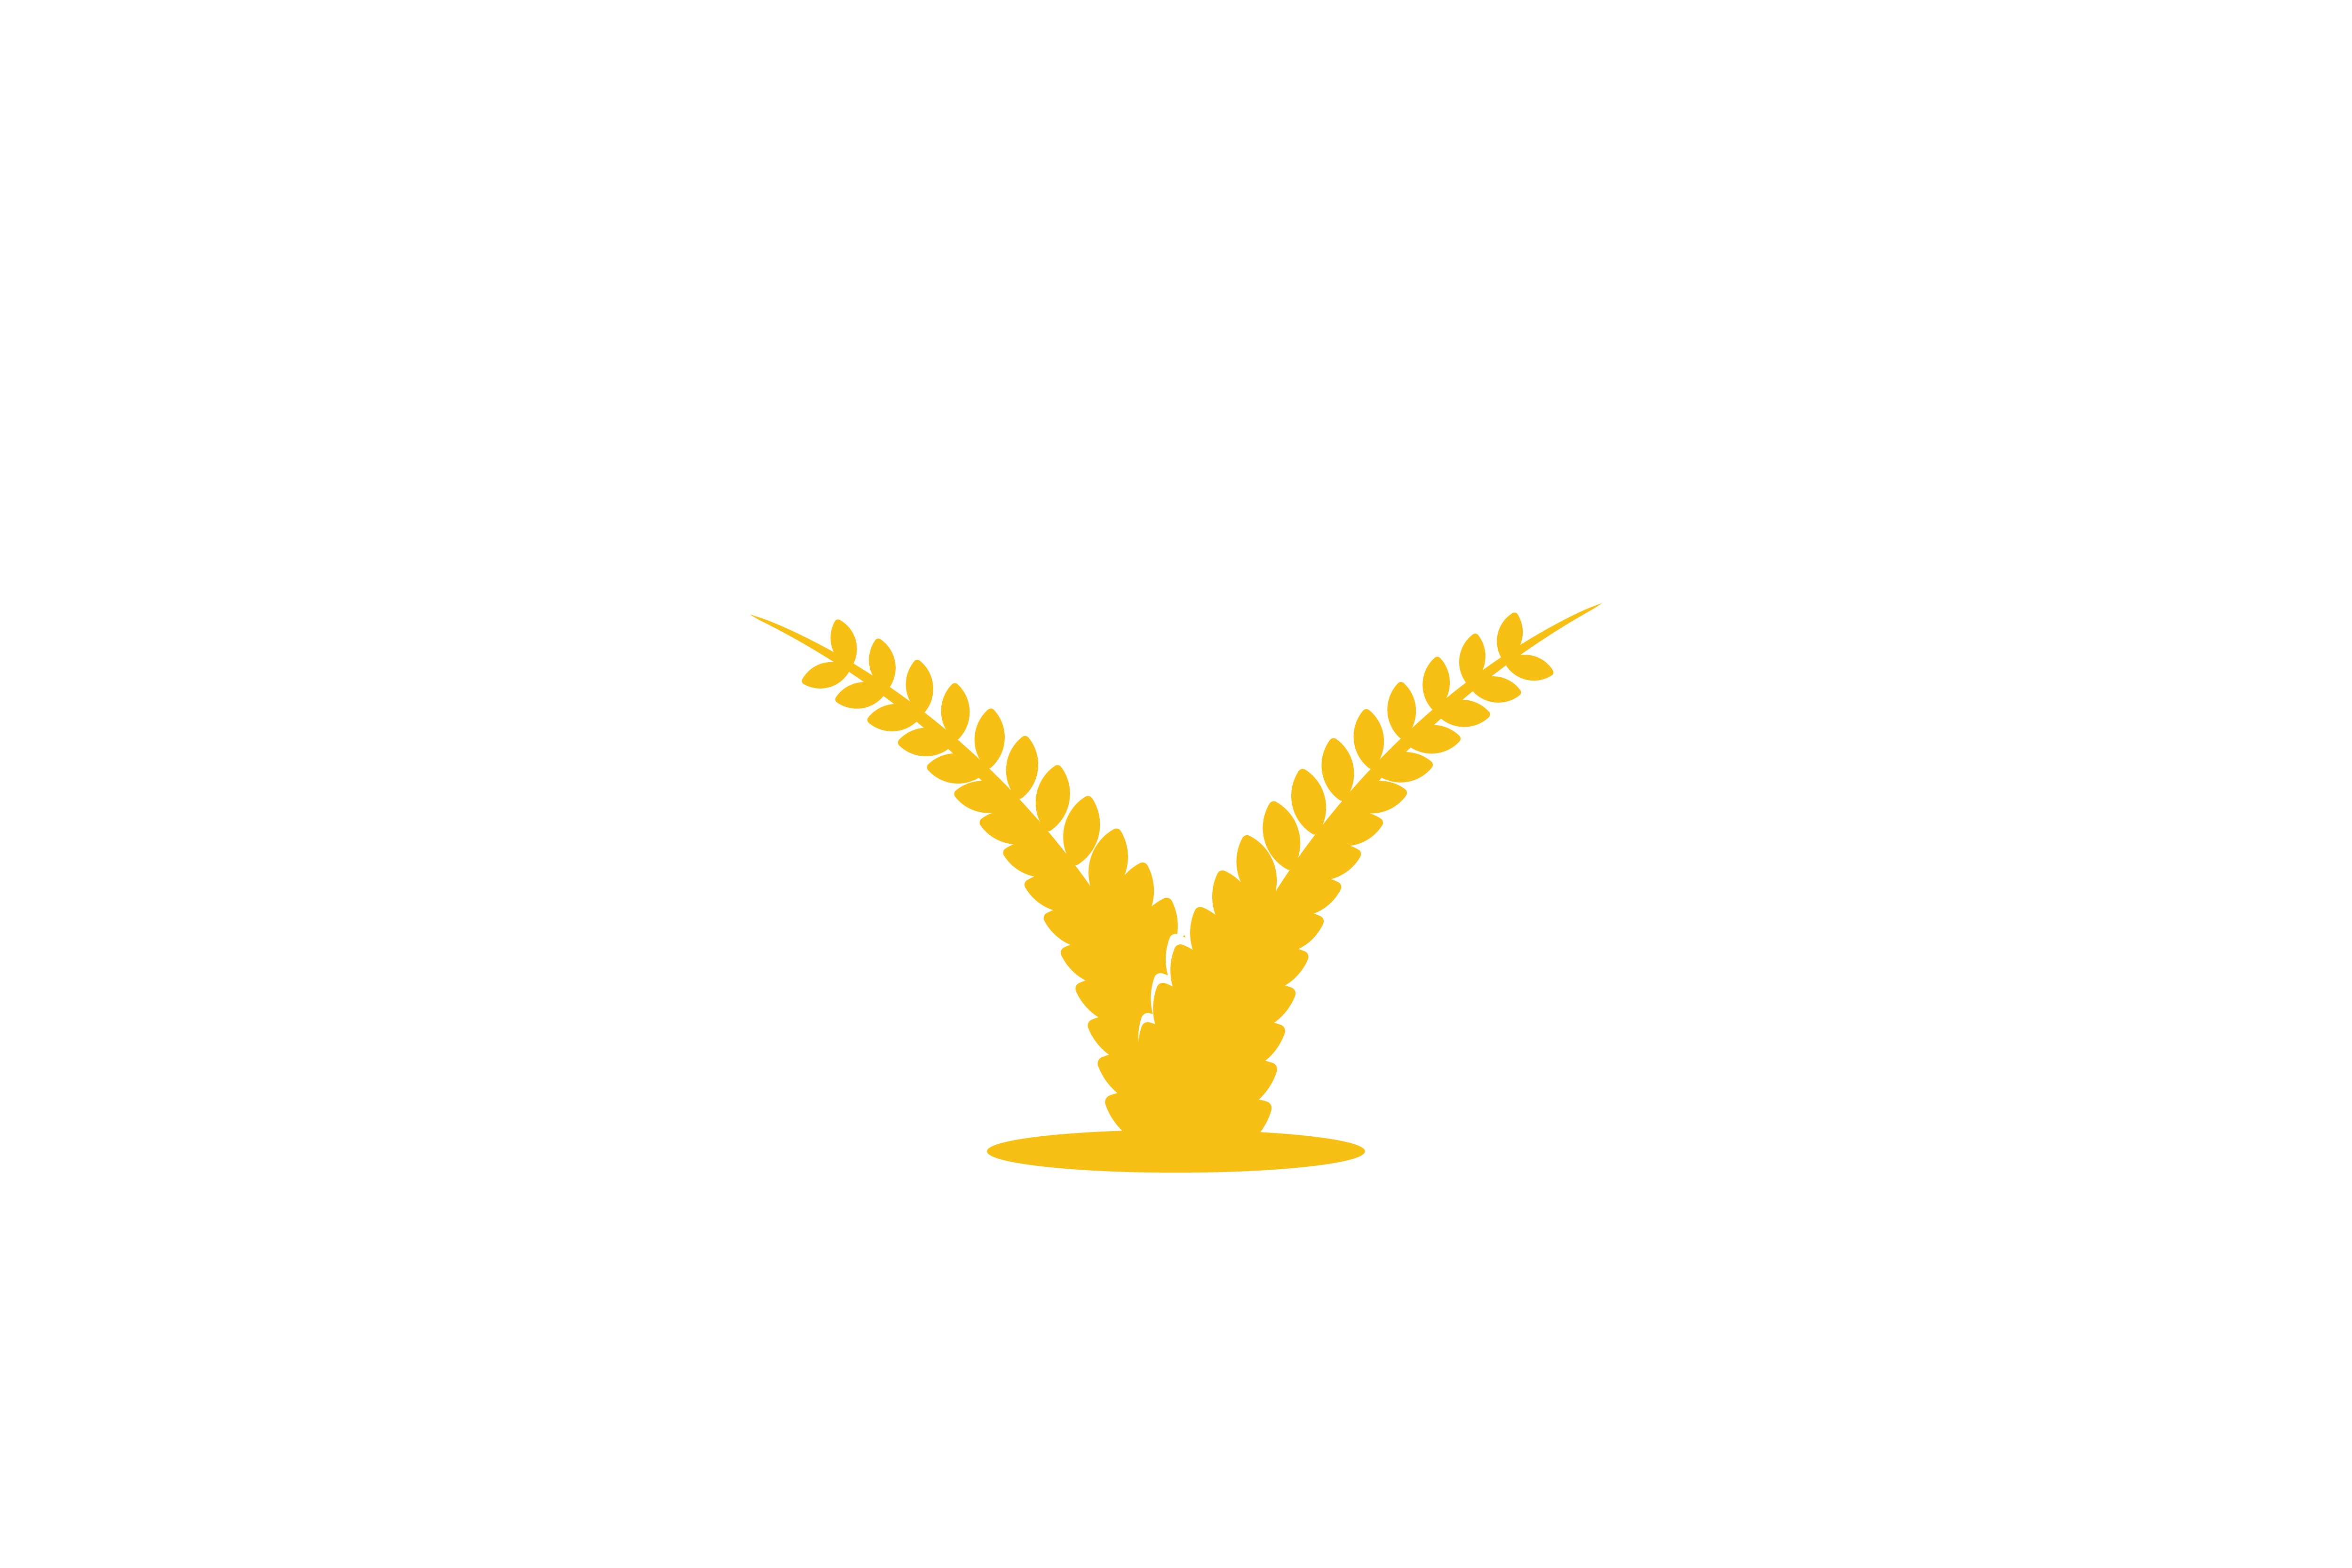 Download Free Wheat Grain Agriculture Logo Graphic By Yahyaanasatokillah for Cricut Explore, Silhouette and other cutting machines.